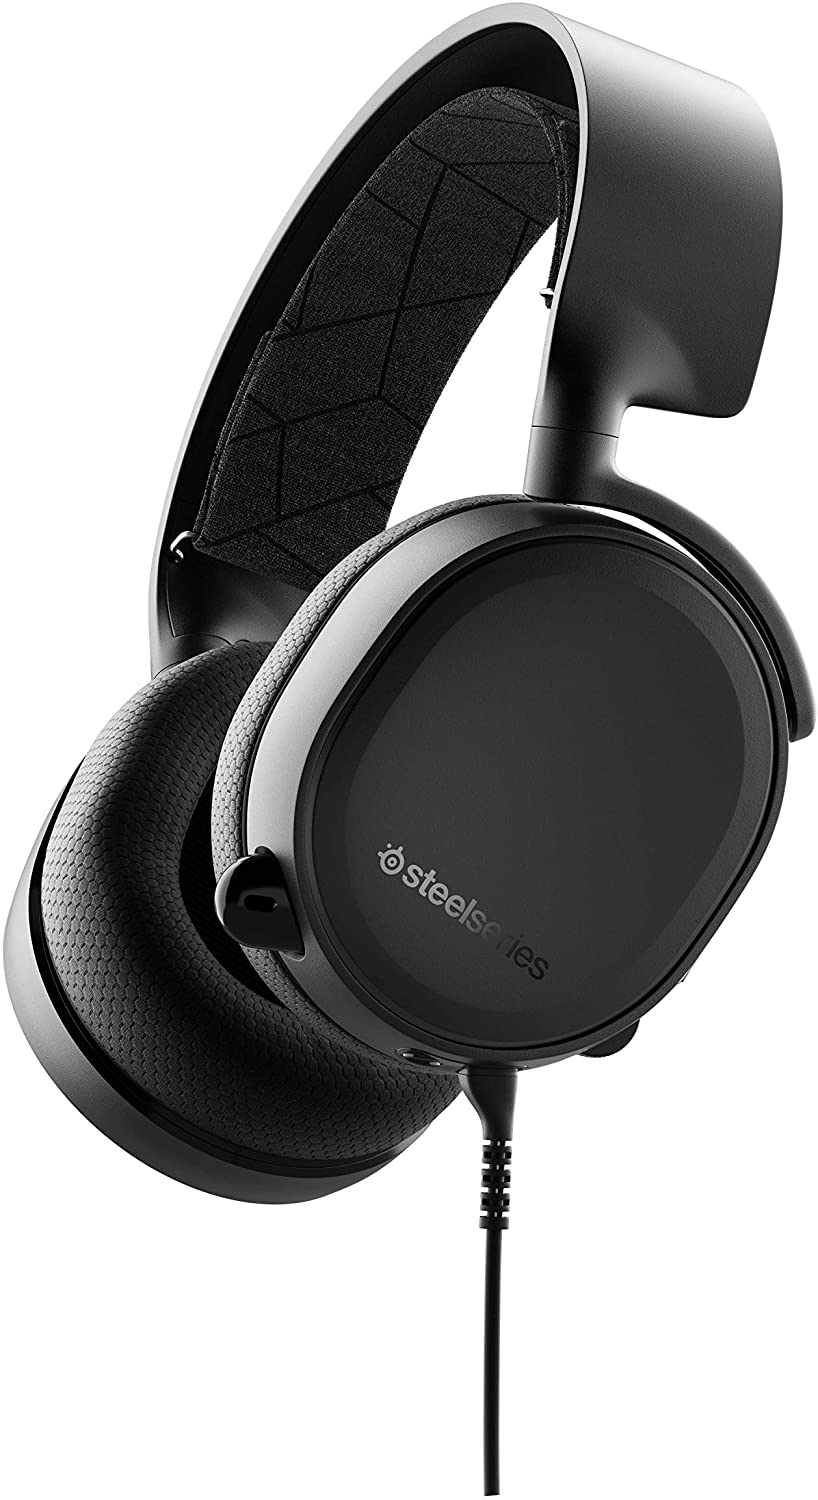 gaming headset for discord